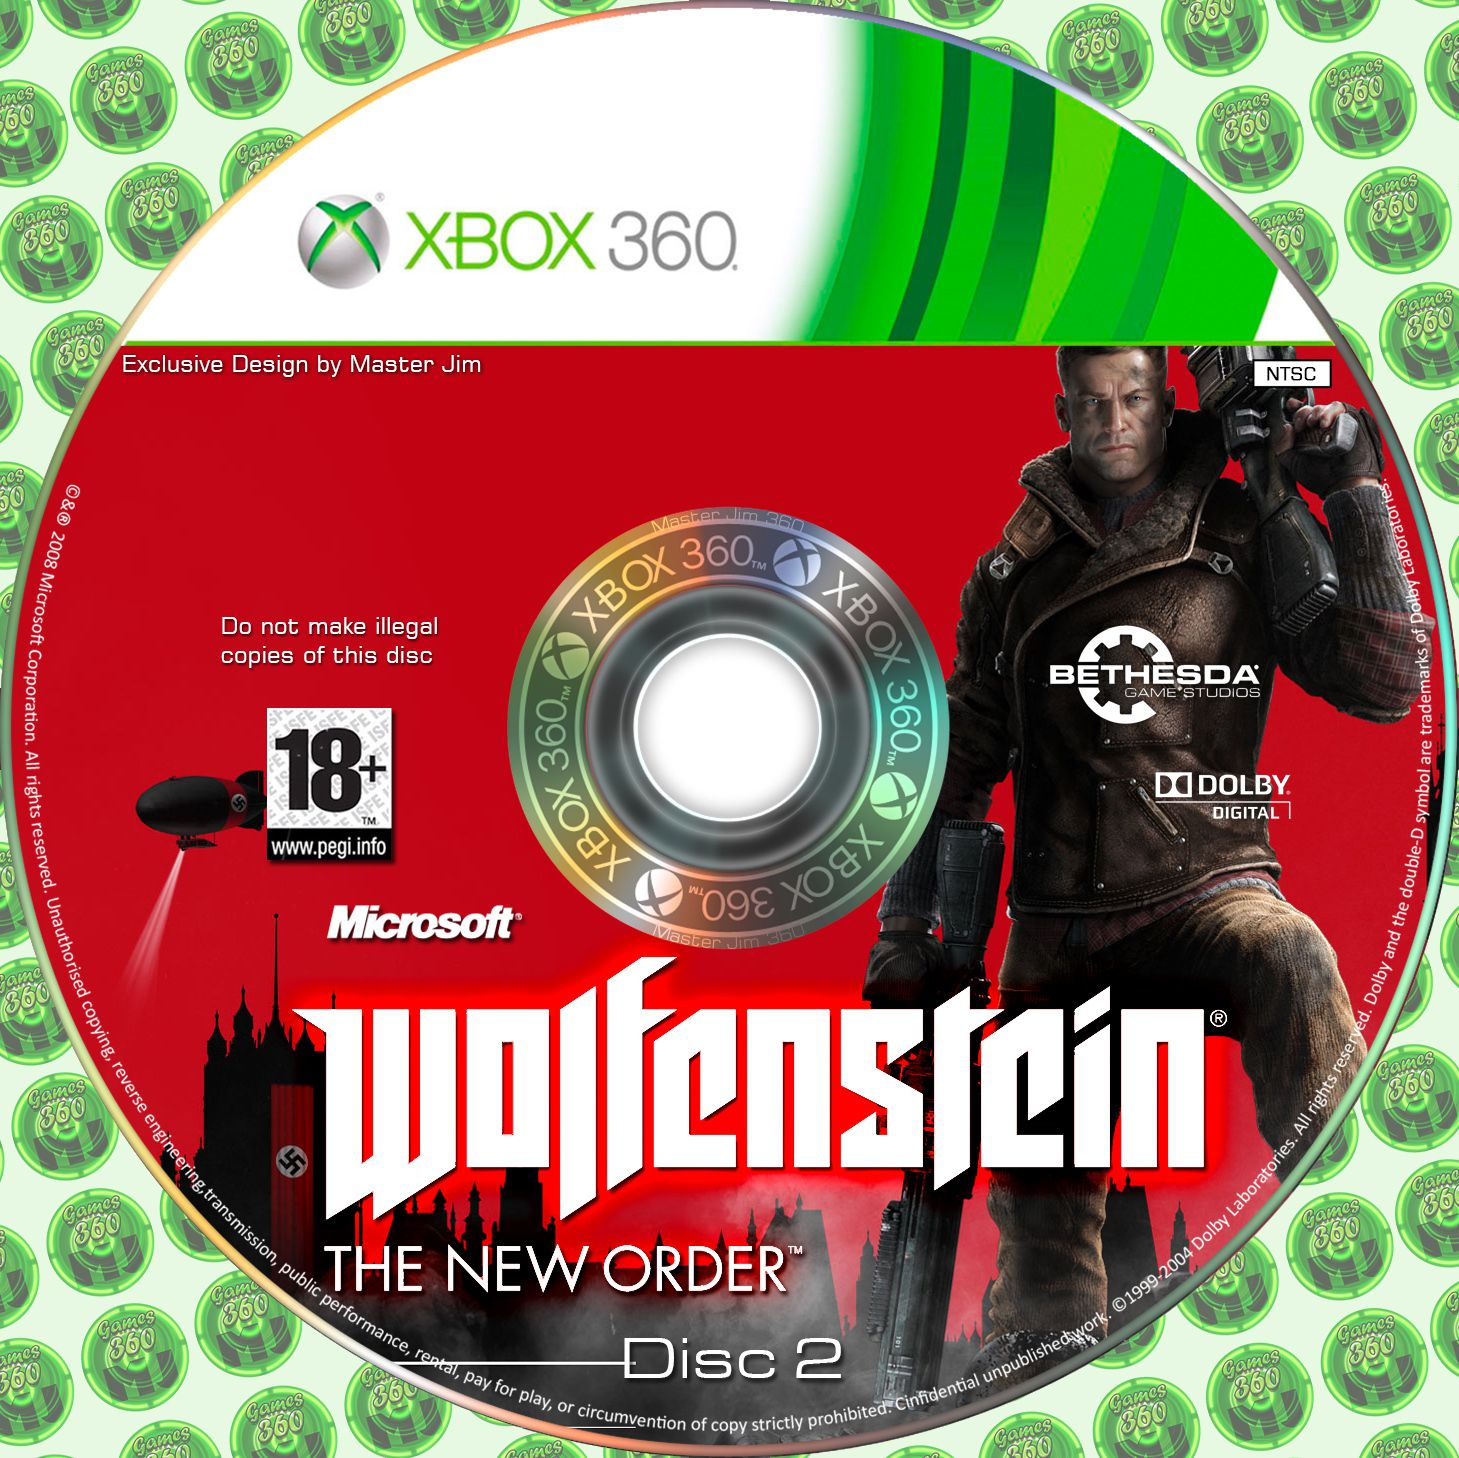 Label Walfenstein The New Order Disc 2 Xbox 360